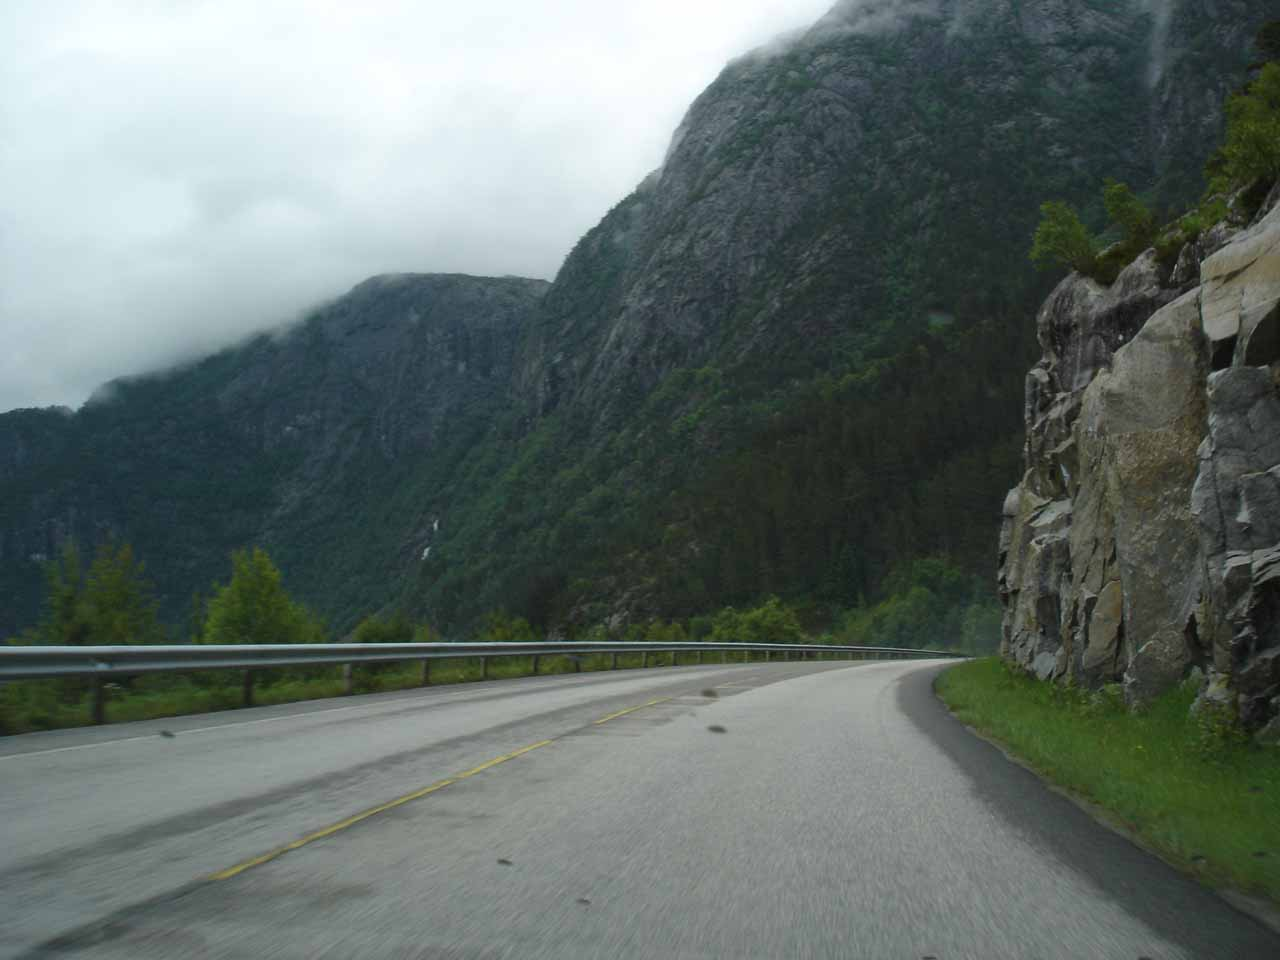 We went a little further east of Langfoss along the E134 just to see if there were other views of the falls, but it turned out there weren't